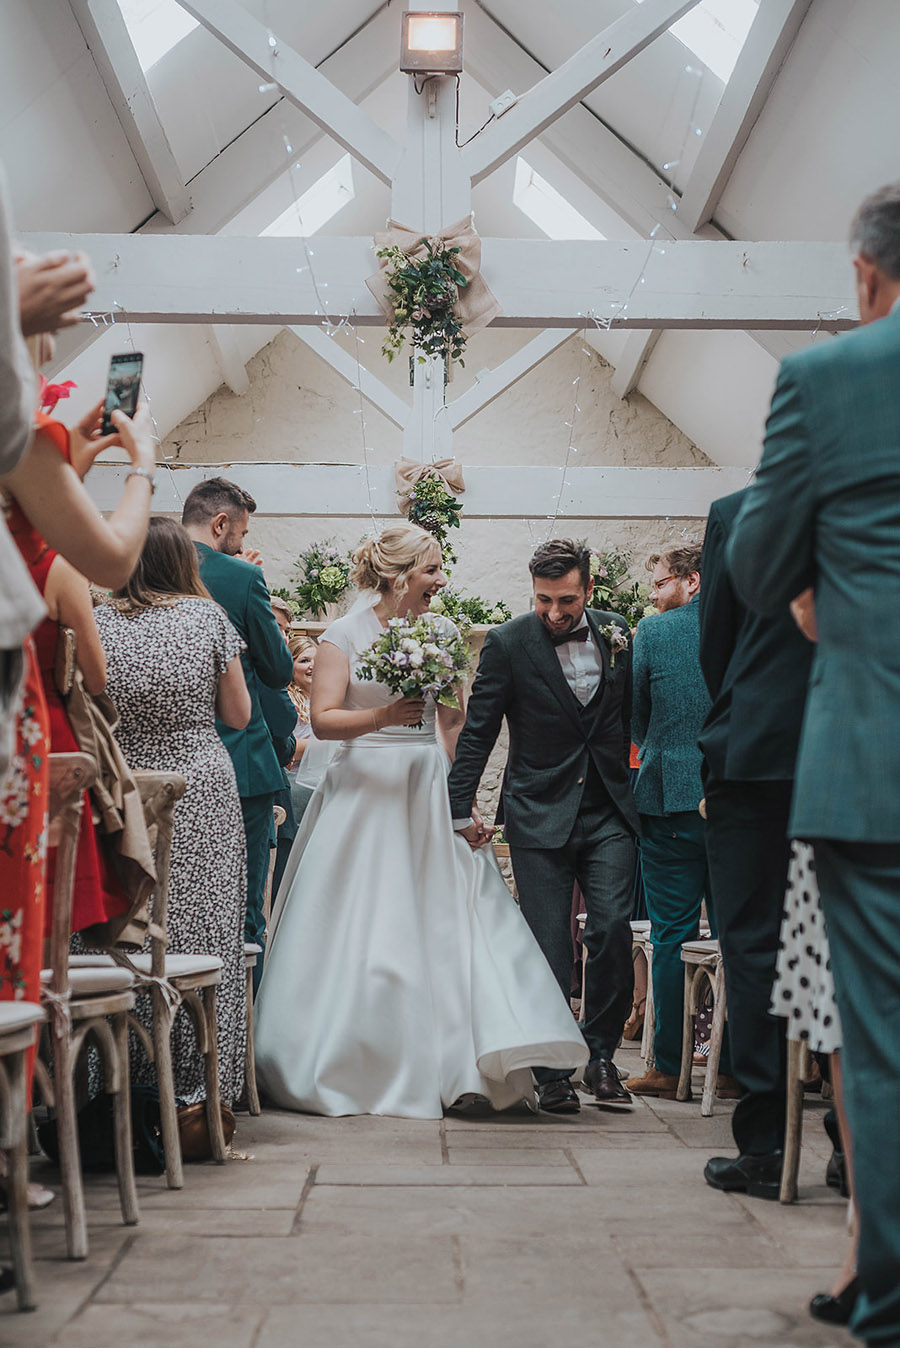 Kath & Adam's creative, DIY wedding at Wyresdale park, with Love Gets Sweeter and Claire Basiuk Photography (24)